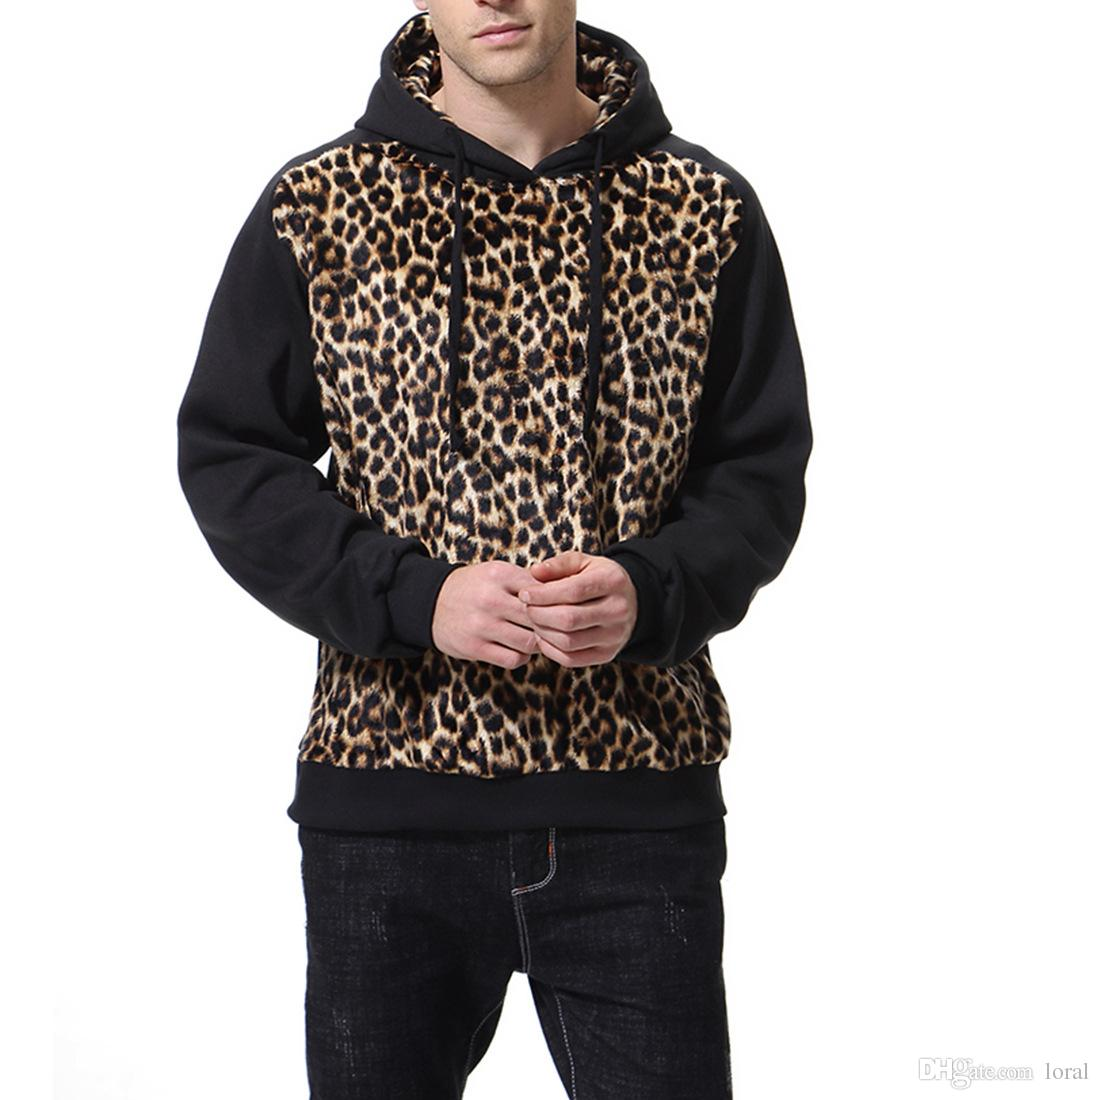 dcb2d8de9ccd 2019 Leopard Printed Mens Designer Hoodies Casual Hip Hop Thin Panelled  Hooded Sweatshirts Male High Street Pullover From Quota, $44.78 | DHgate.Com